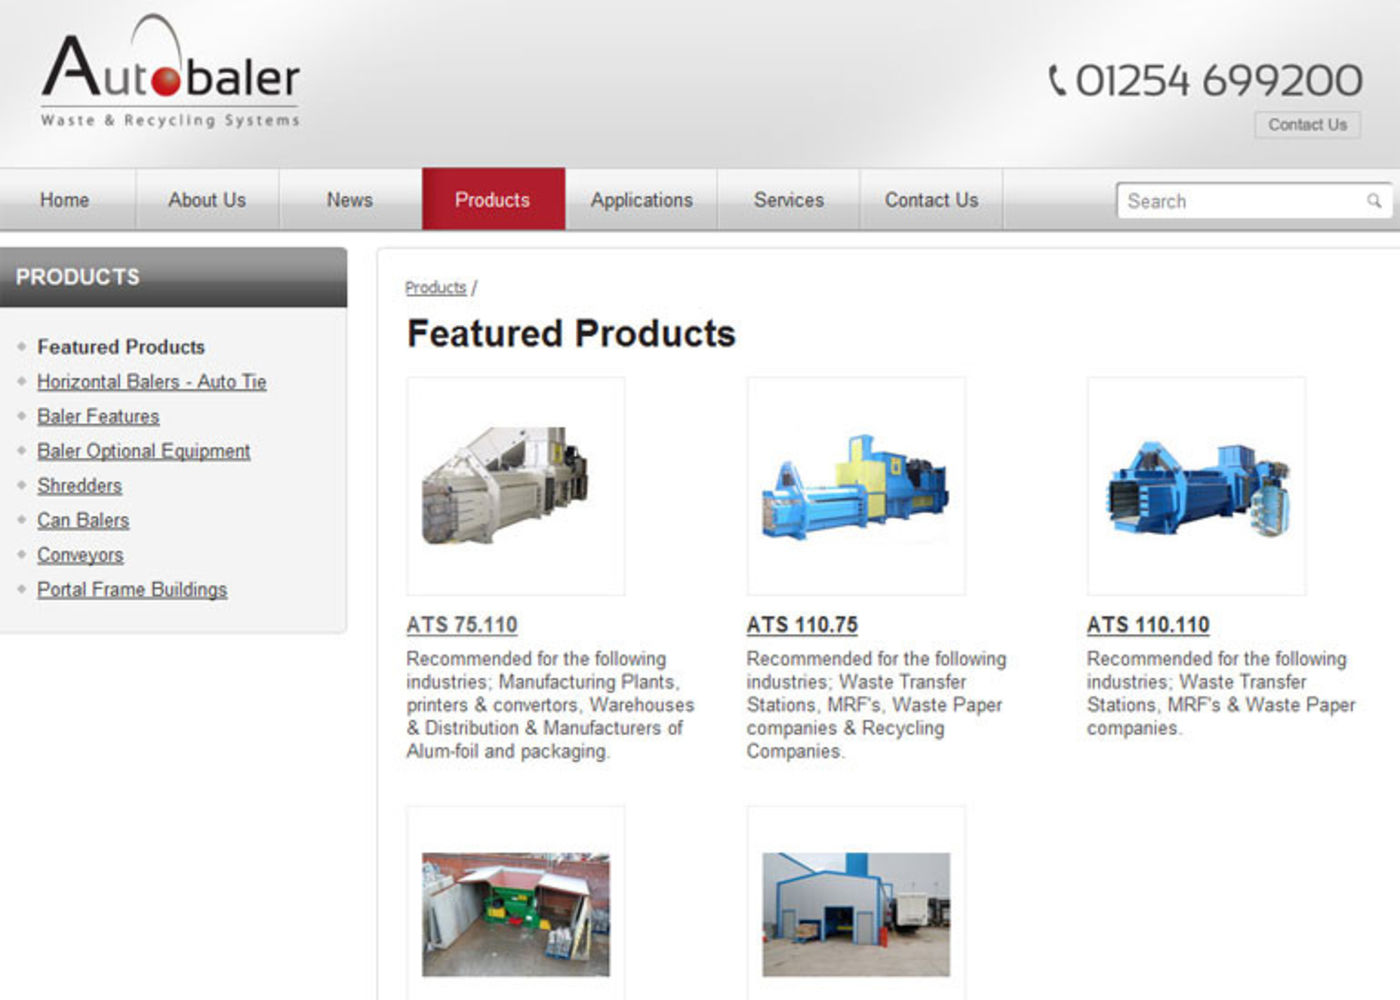 Autobaler Products list